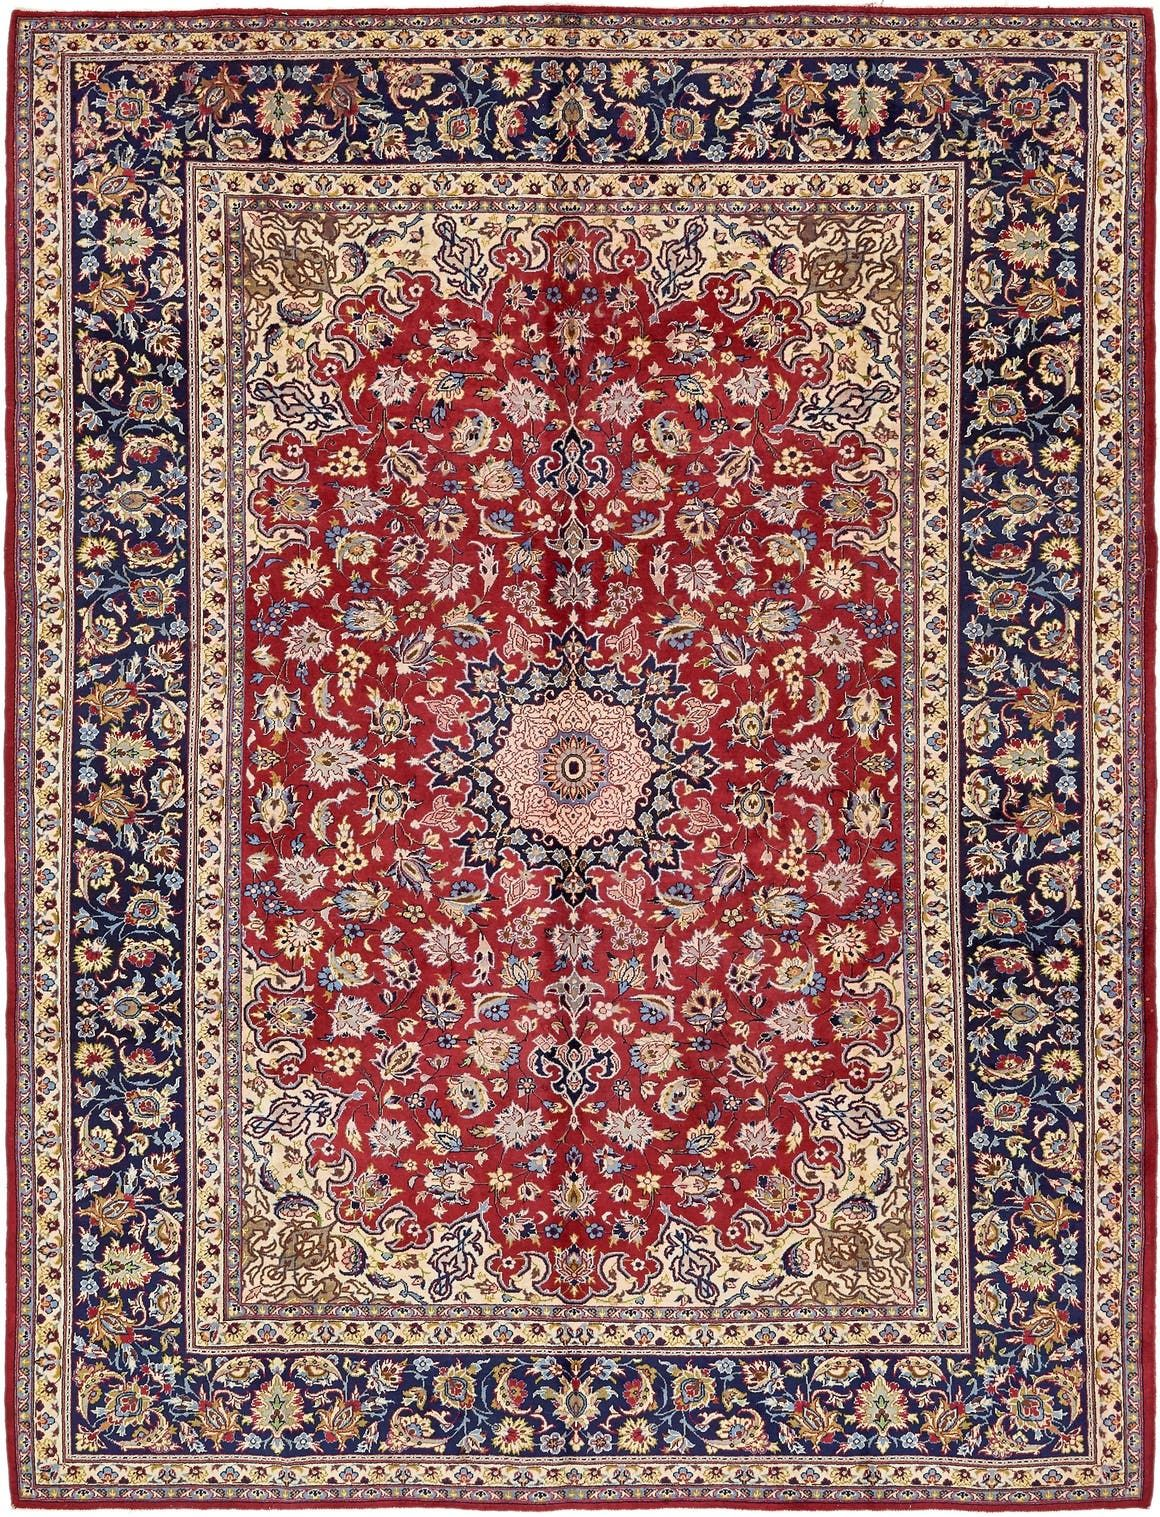 Isfahan Red Antique 10x13 Large Area Rug In 2020 Persian Rug Rugs Large Area Rugs